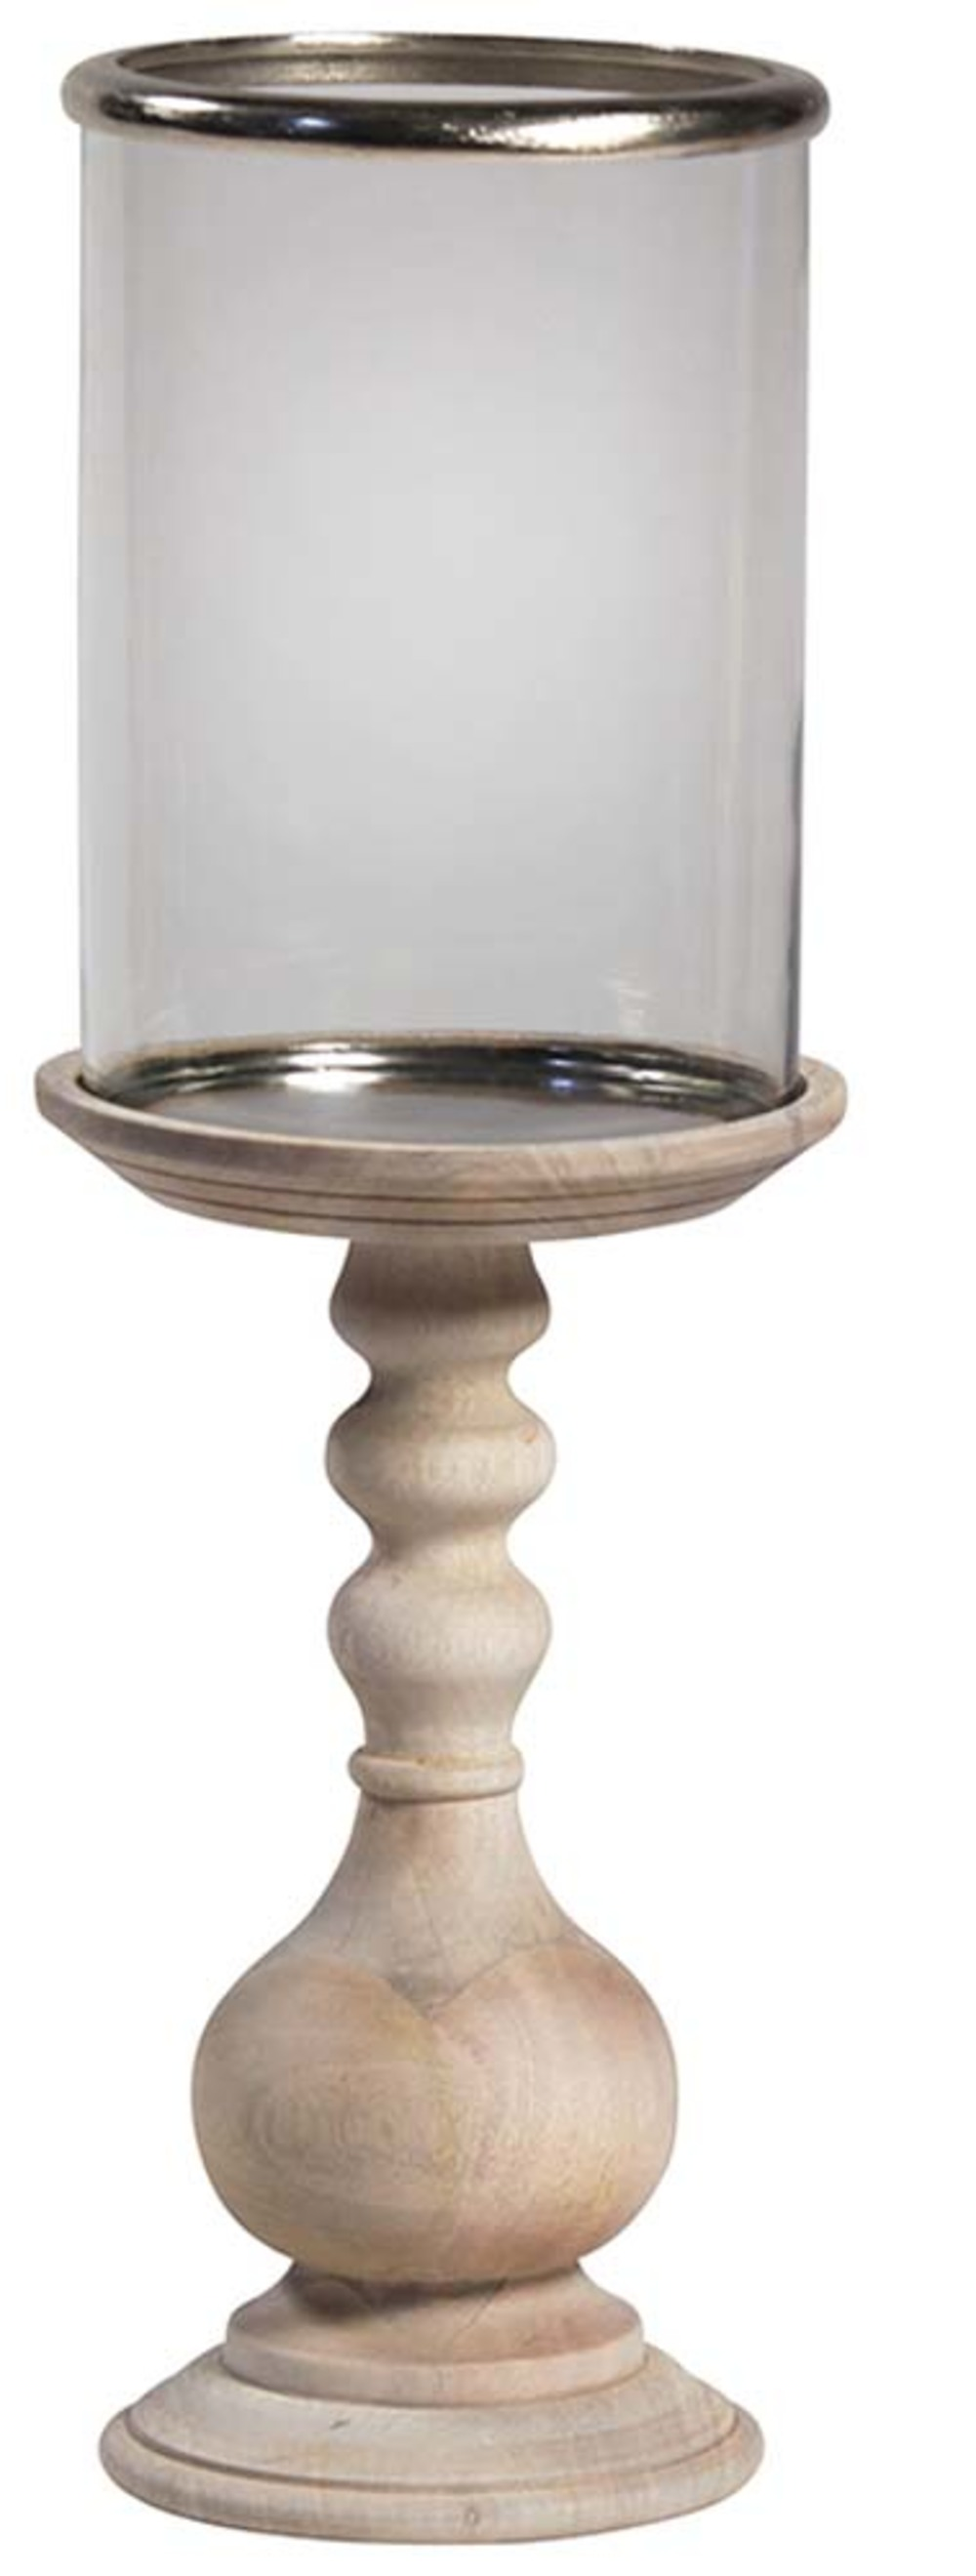 Dovetail Furniture - Wooden Pillar Holder with Glass